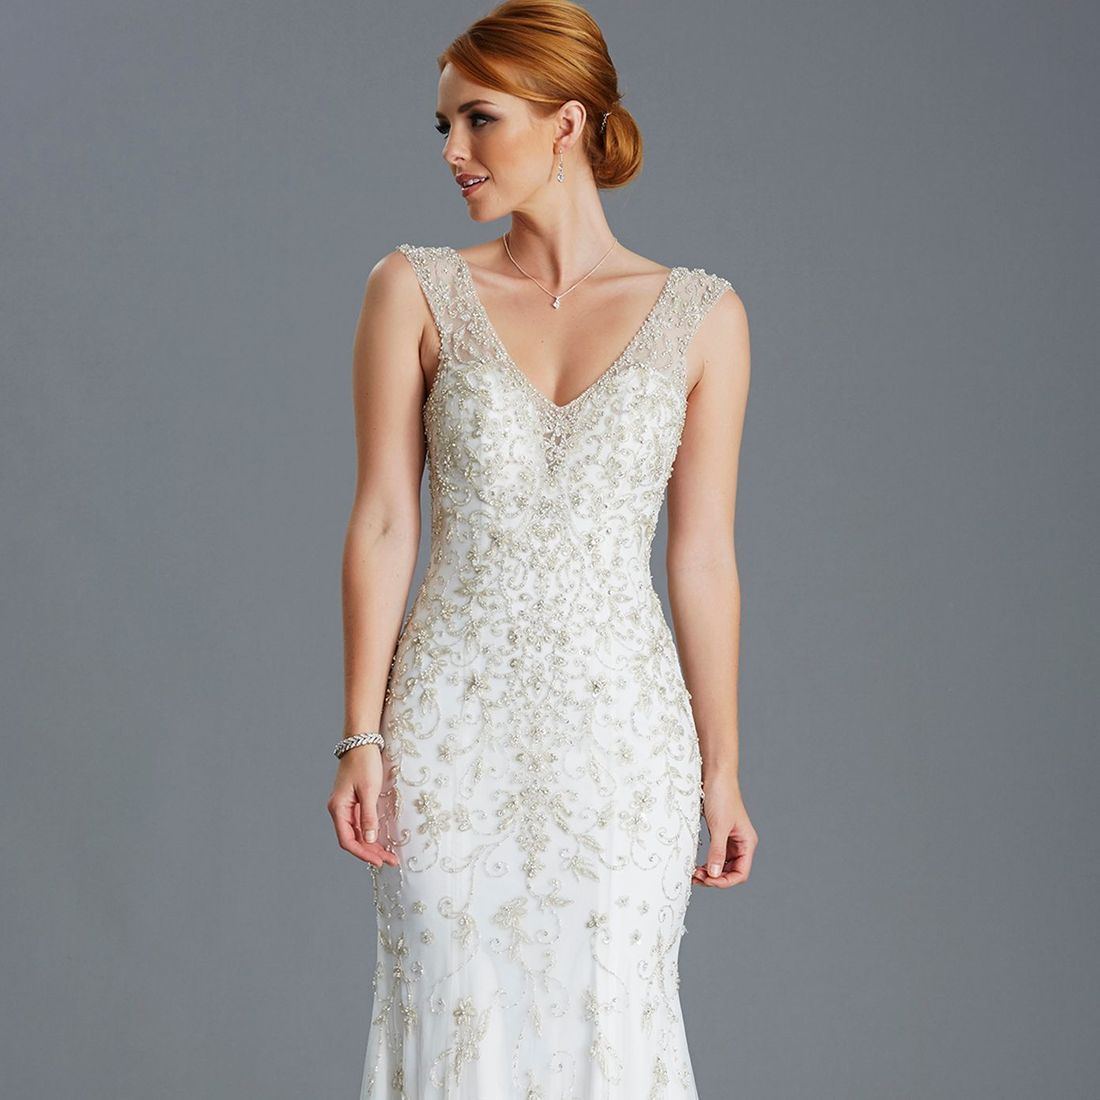 Encrusted slimfit wedding dress